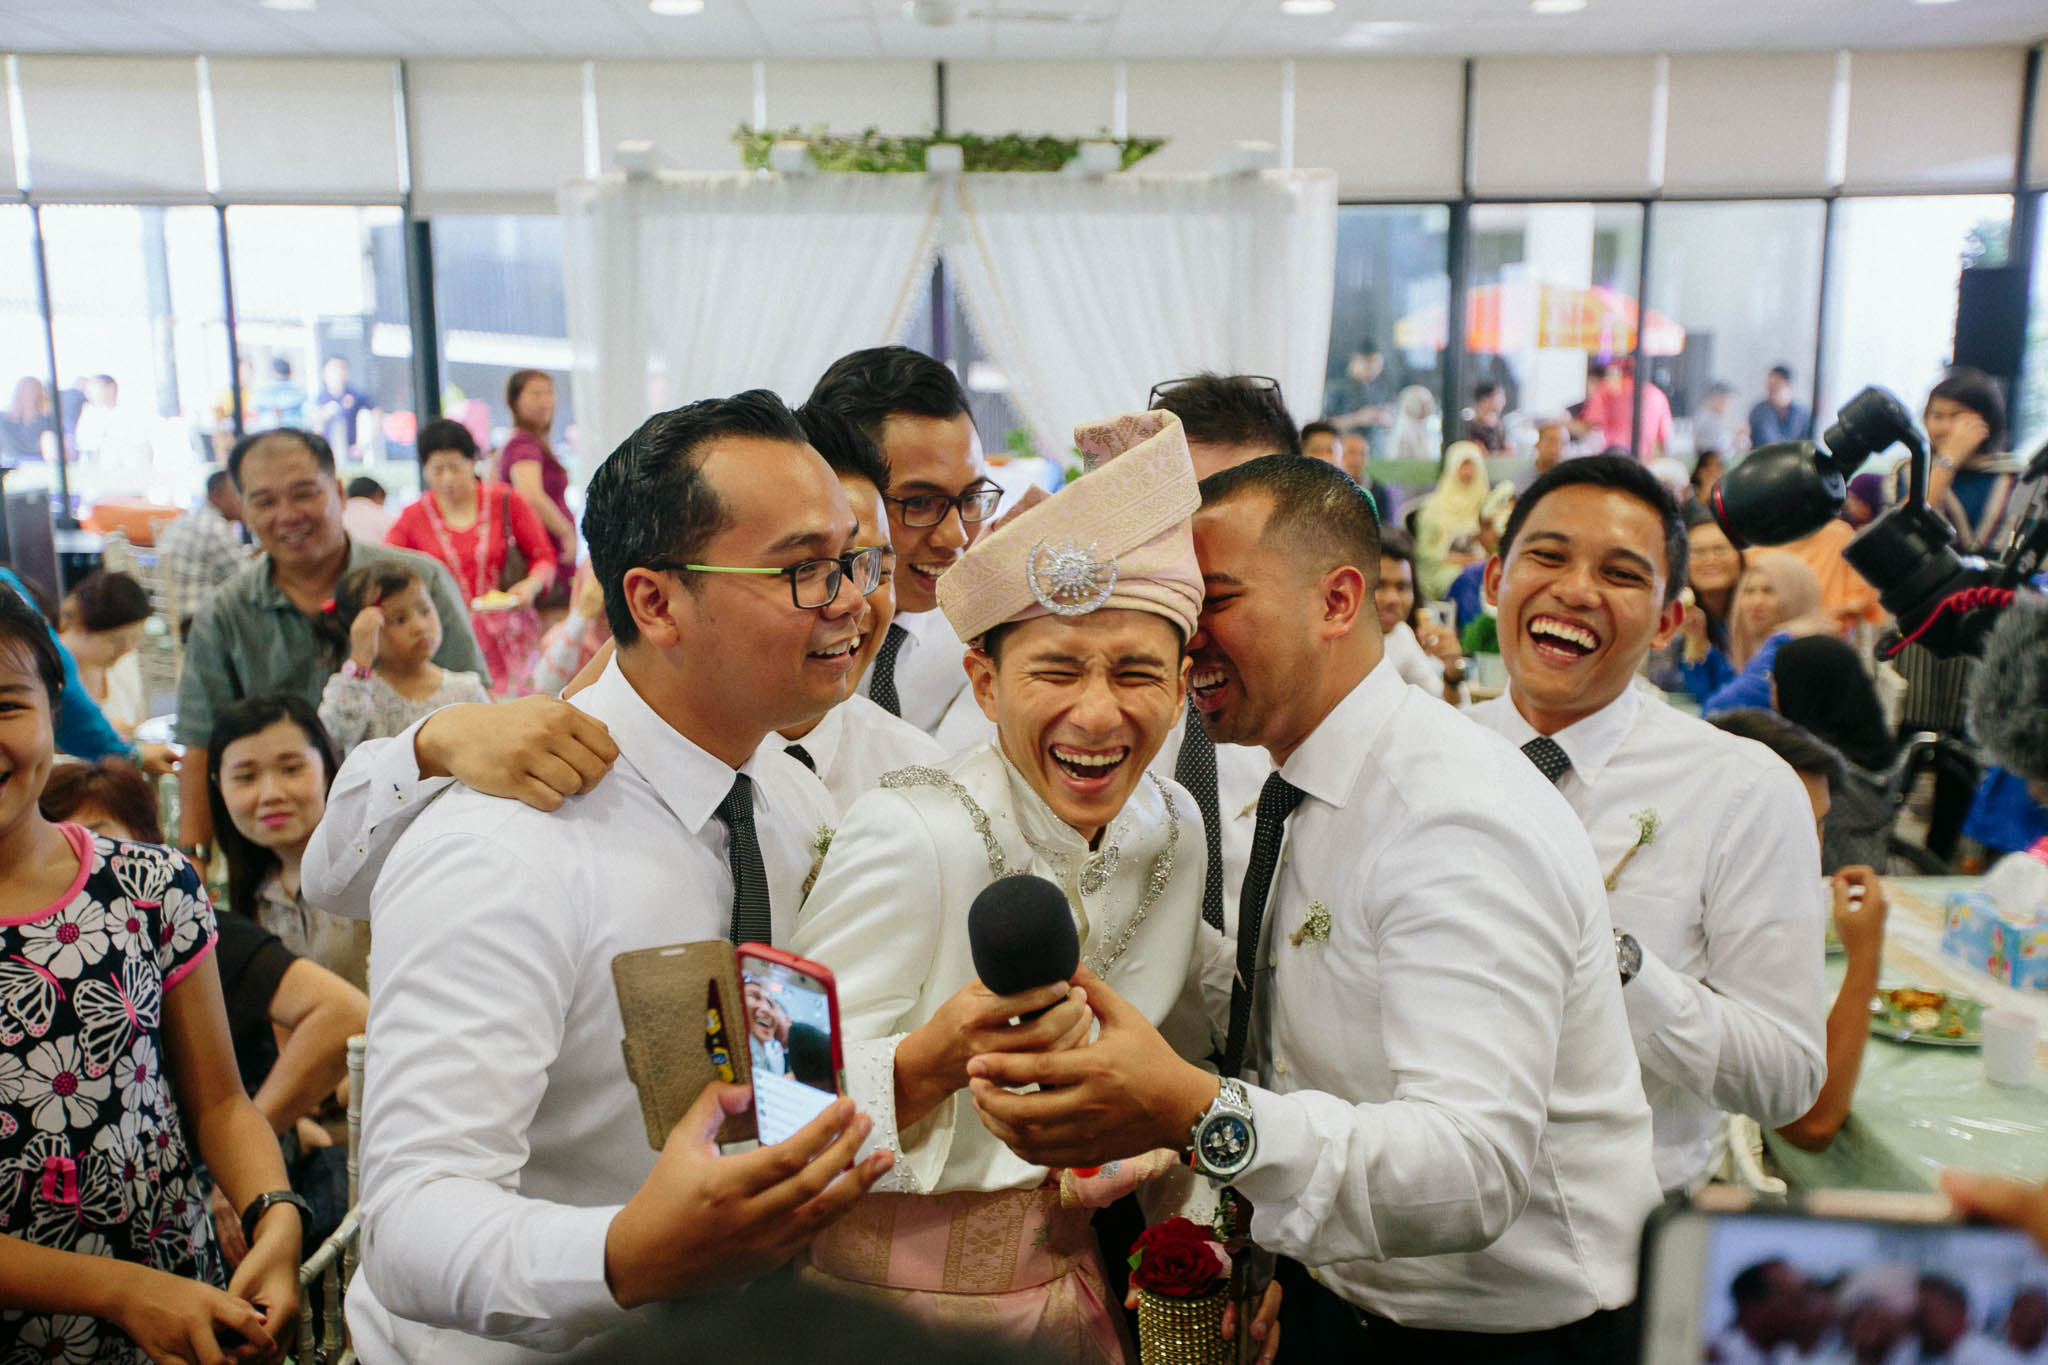 singapore-wedding-photographer-we-made-these-2016-selects-074.jpg